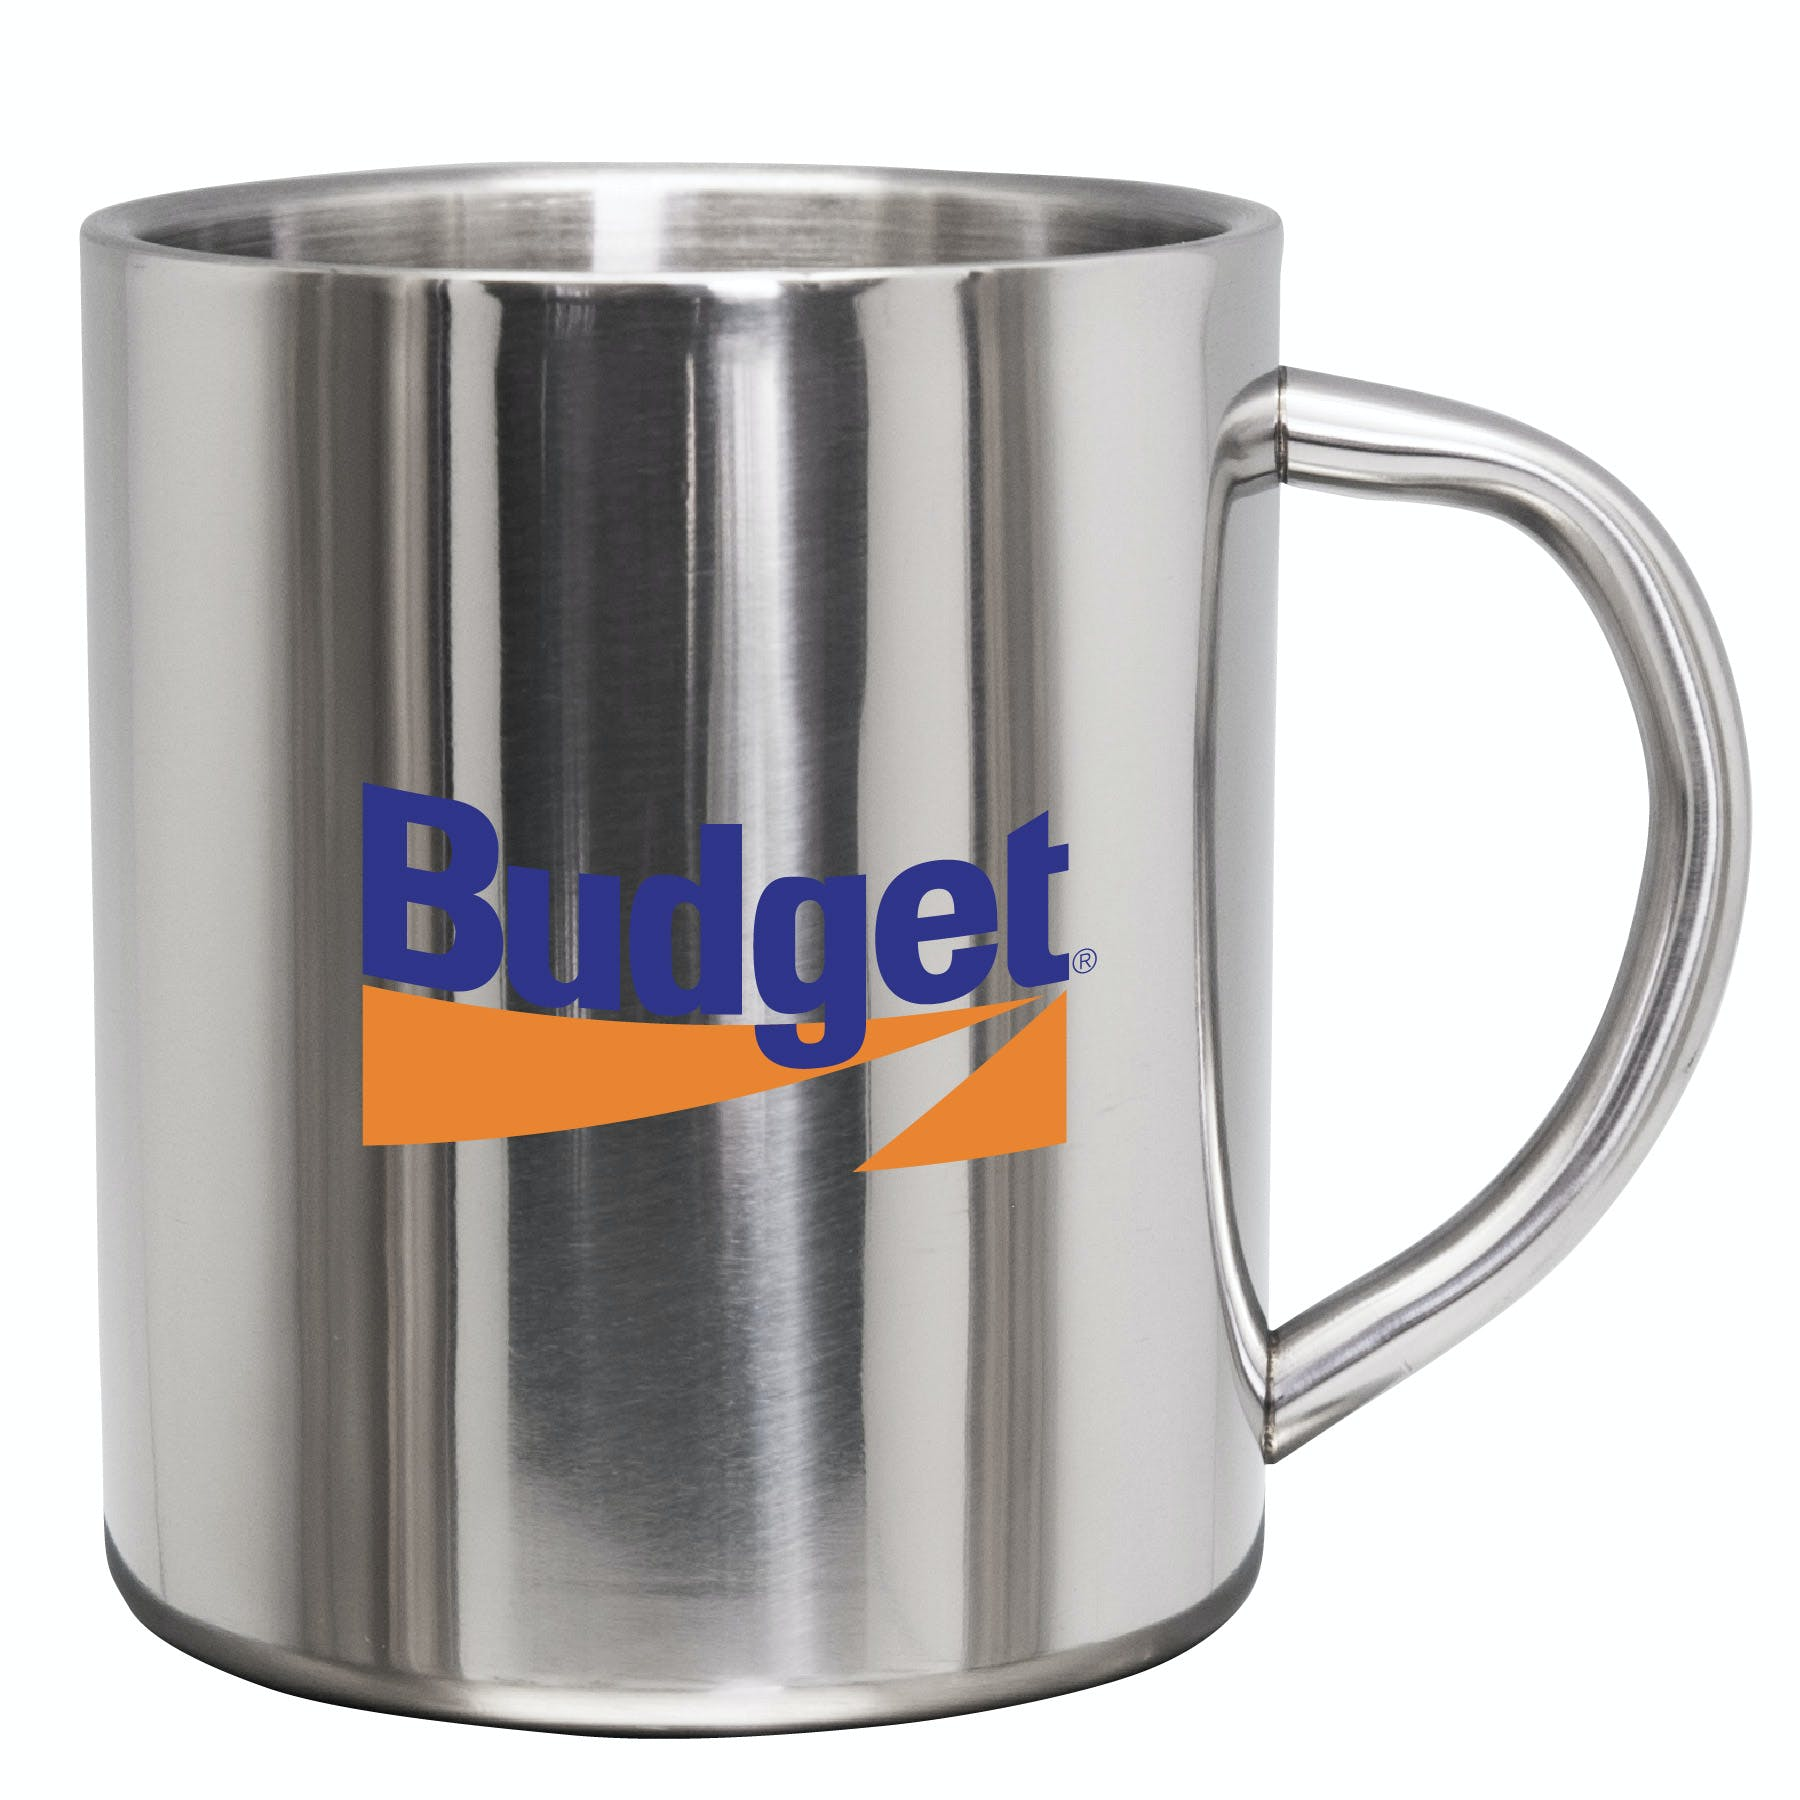 9 Oz. Stainless Steel Coffee Mug (Item # YBKMO-JIWOP) Stainless steel mug sold by InkEasy